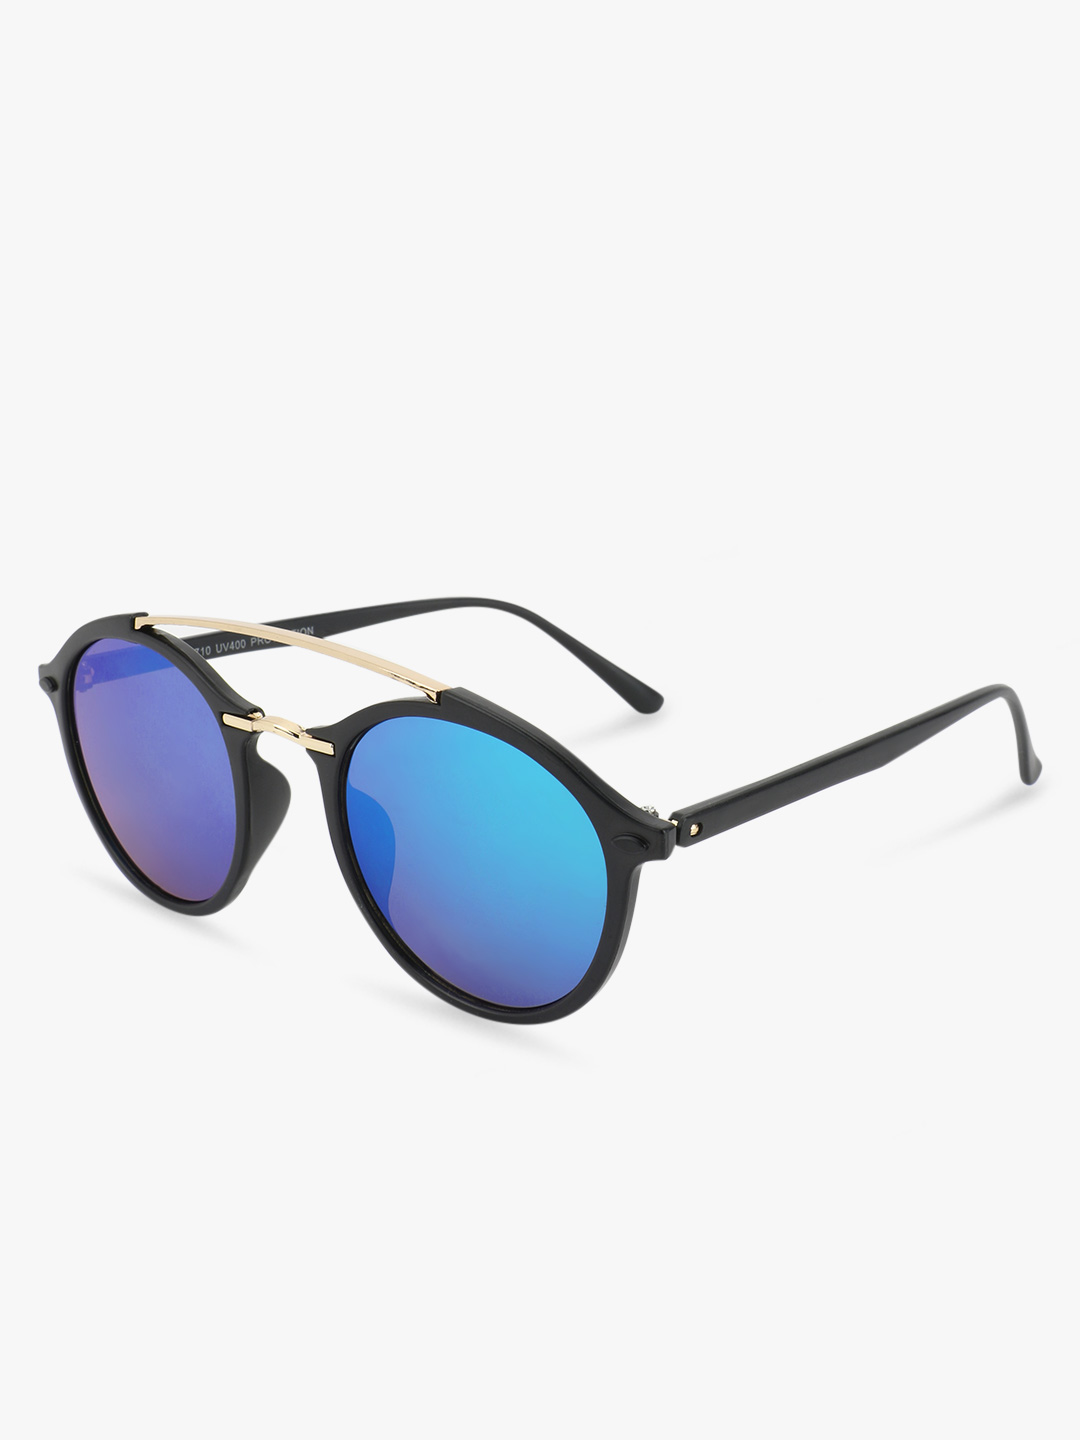 Kindred Blue Coloured Mirror Round Sunglasses 1